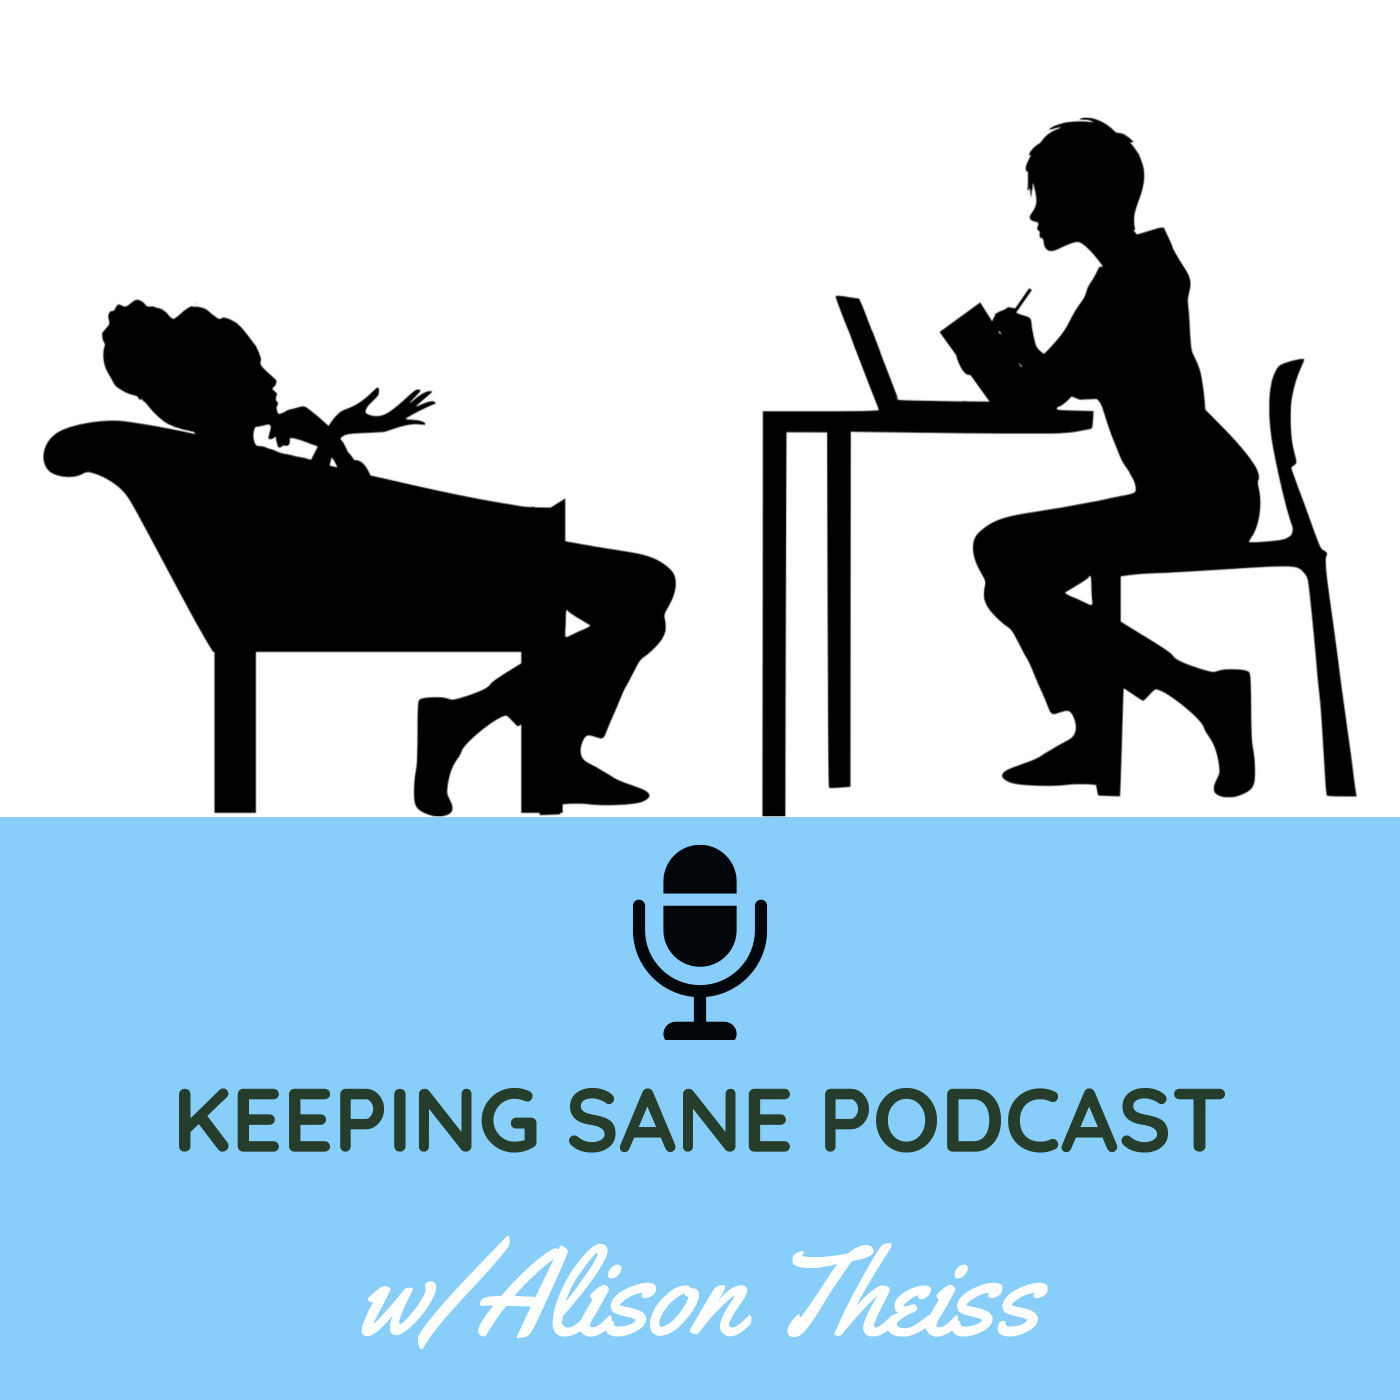 Keeping Sane Podcast